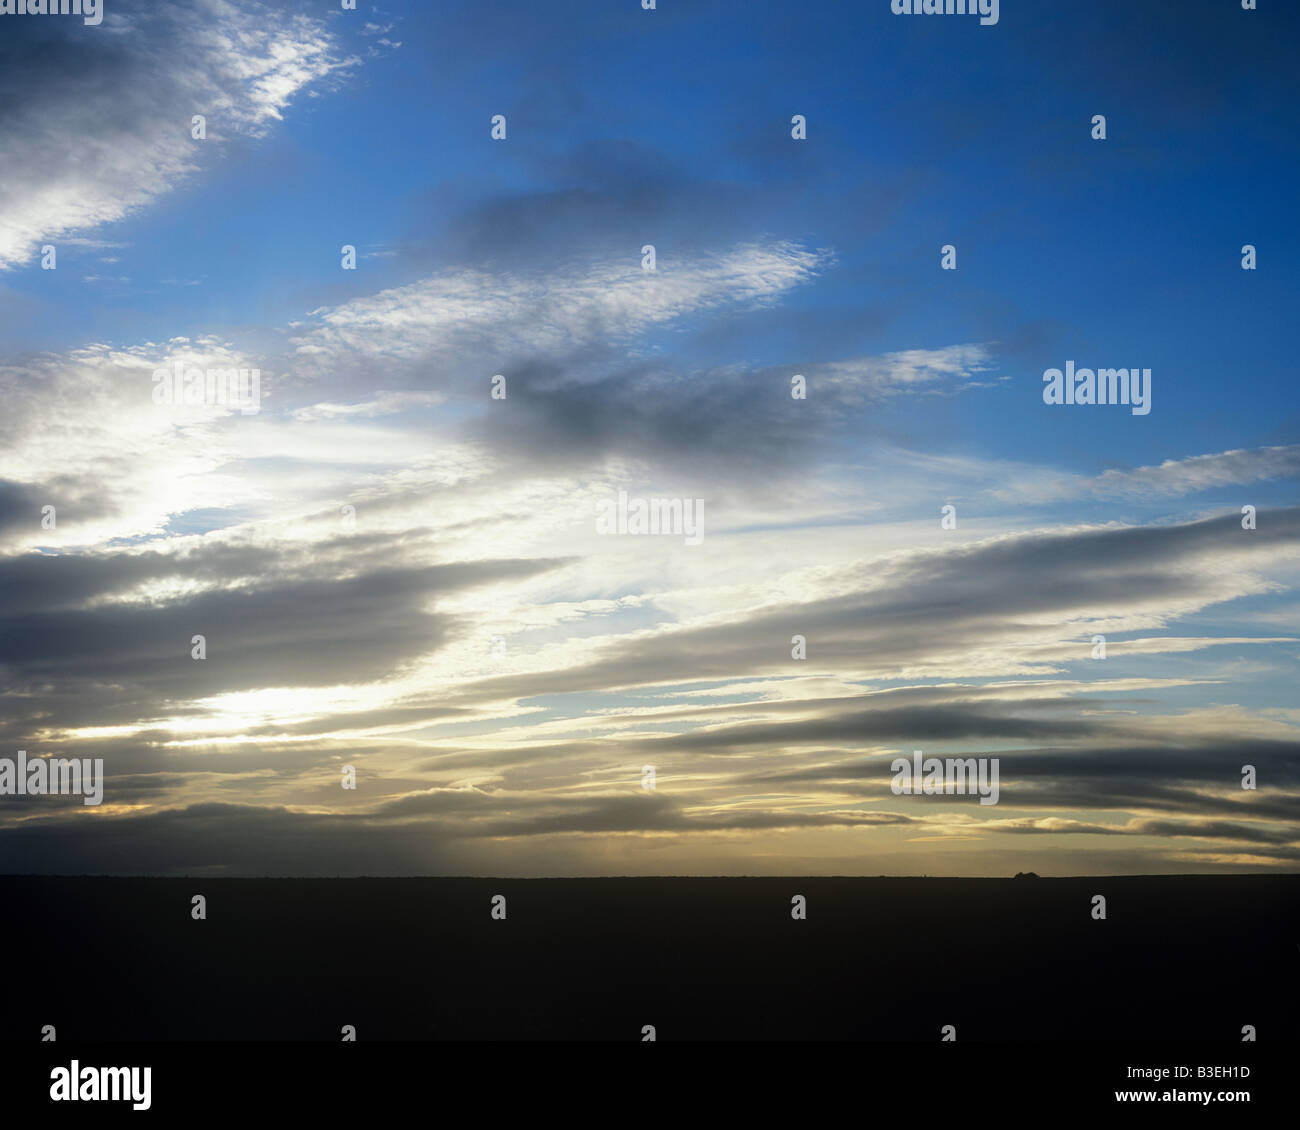 Clouds over land - Stock Image